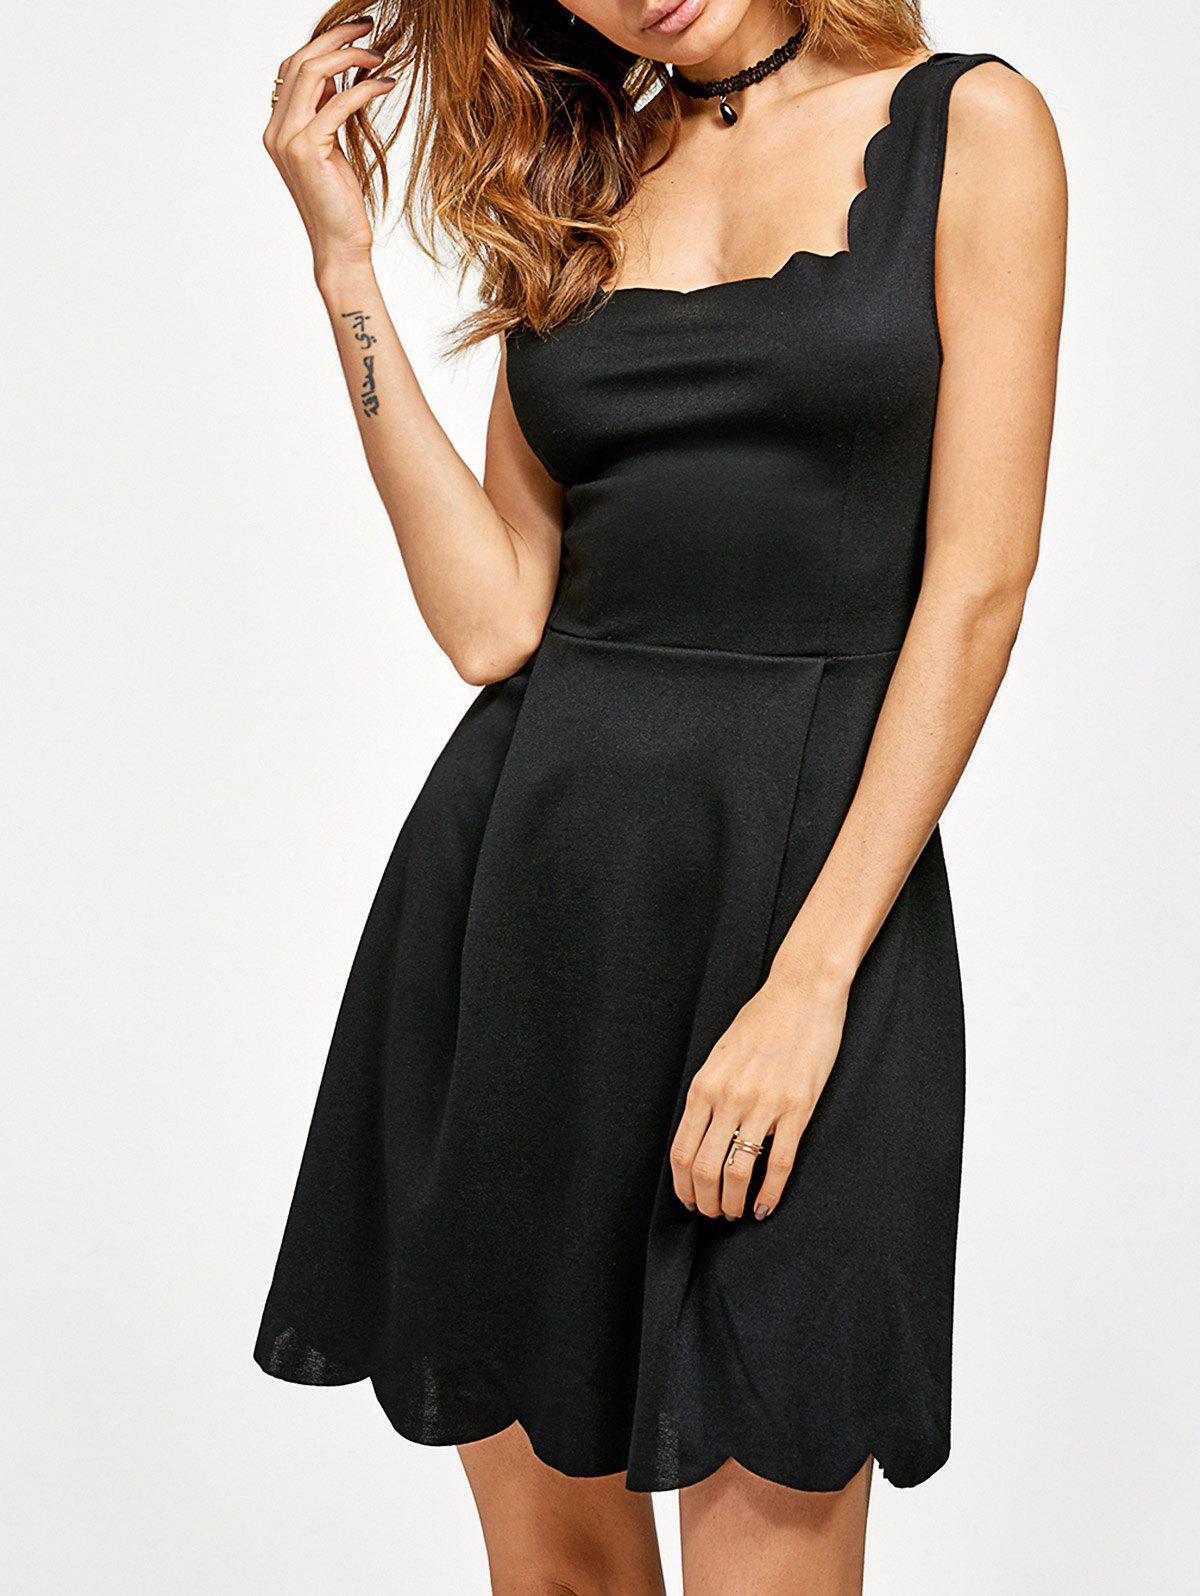 Scalloped Fit and Flare Dress - BLACK M